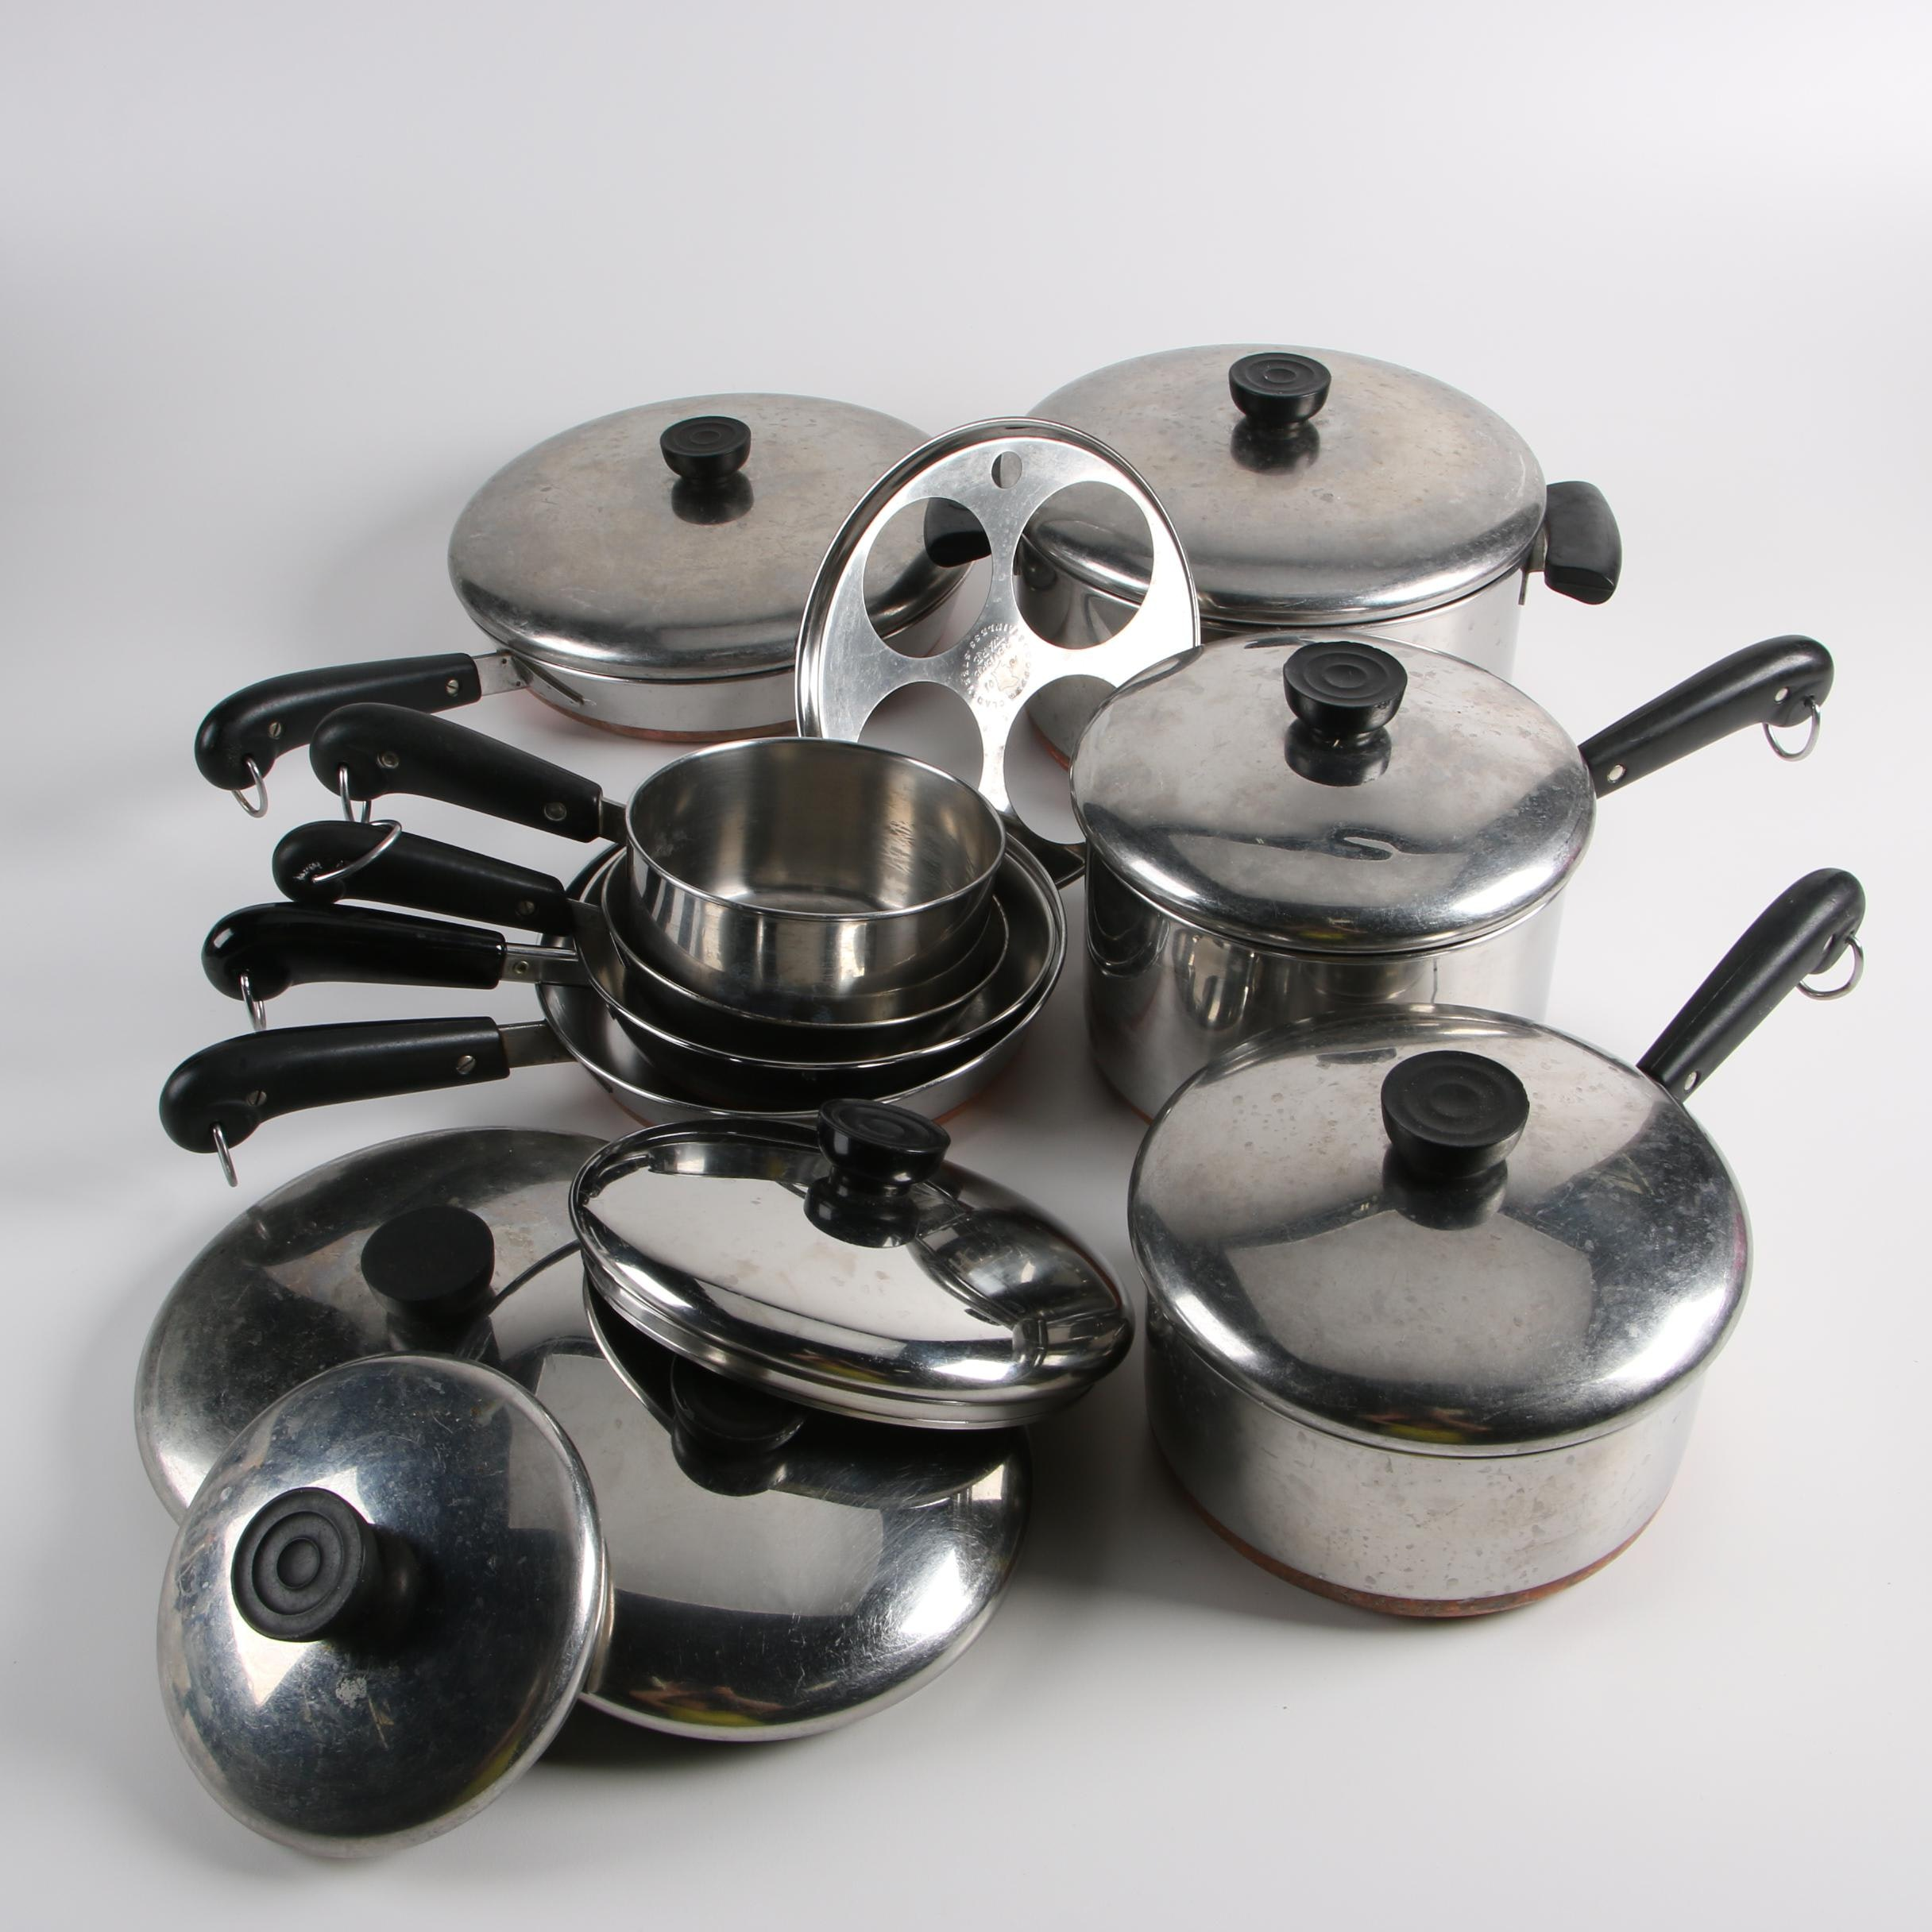 Revere-Ware Stainless Cookware with Copper Bottoms